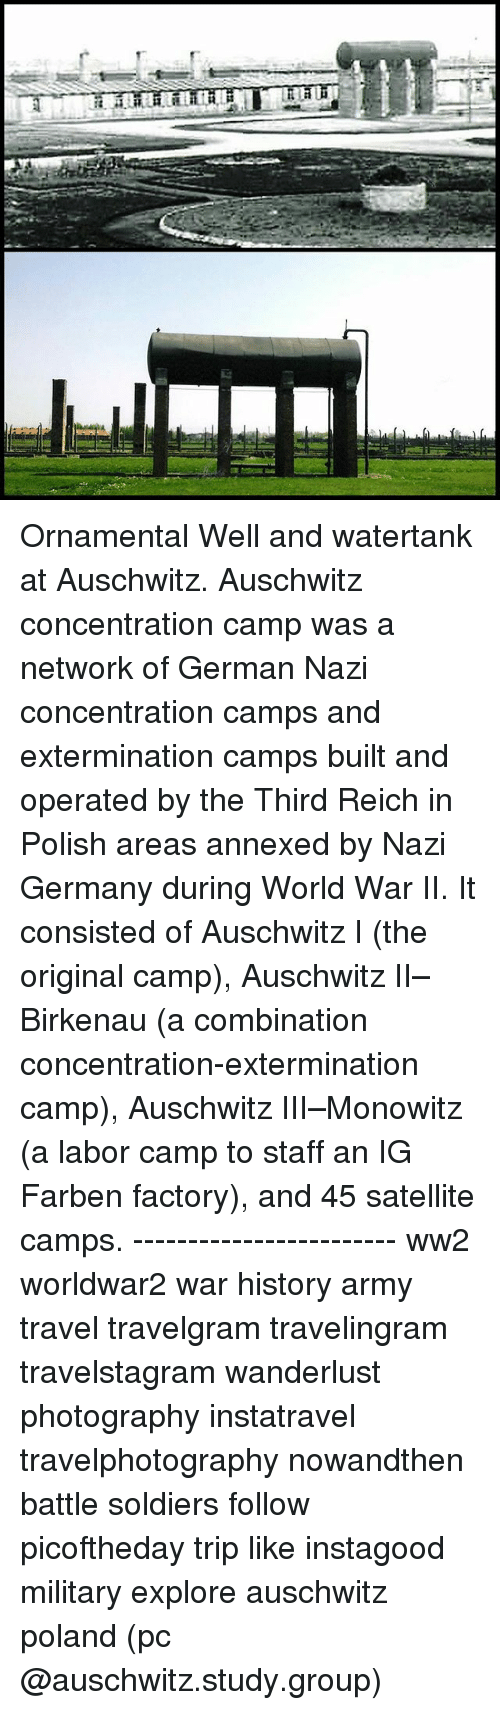 the history of the deadliest camp during world war ii the nazi camp of auschwitz Auschwitz is a place of unparalleled horror and the site of the largest mass murder in history laurence rees looks inside the mind of the man who built and ran the camp.